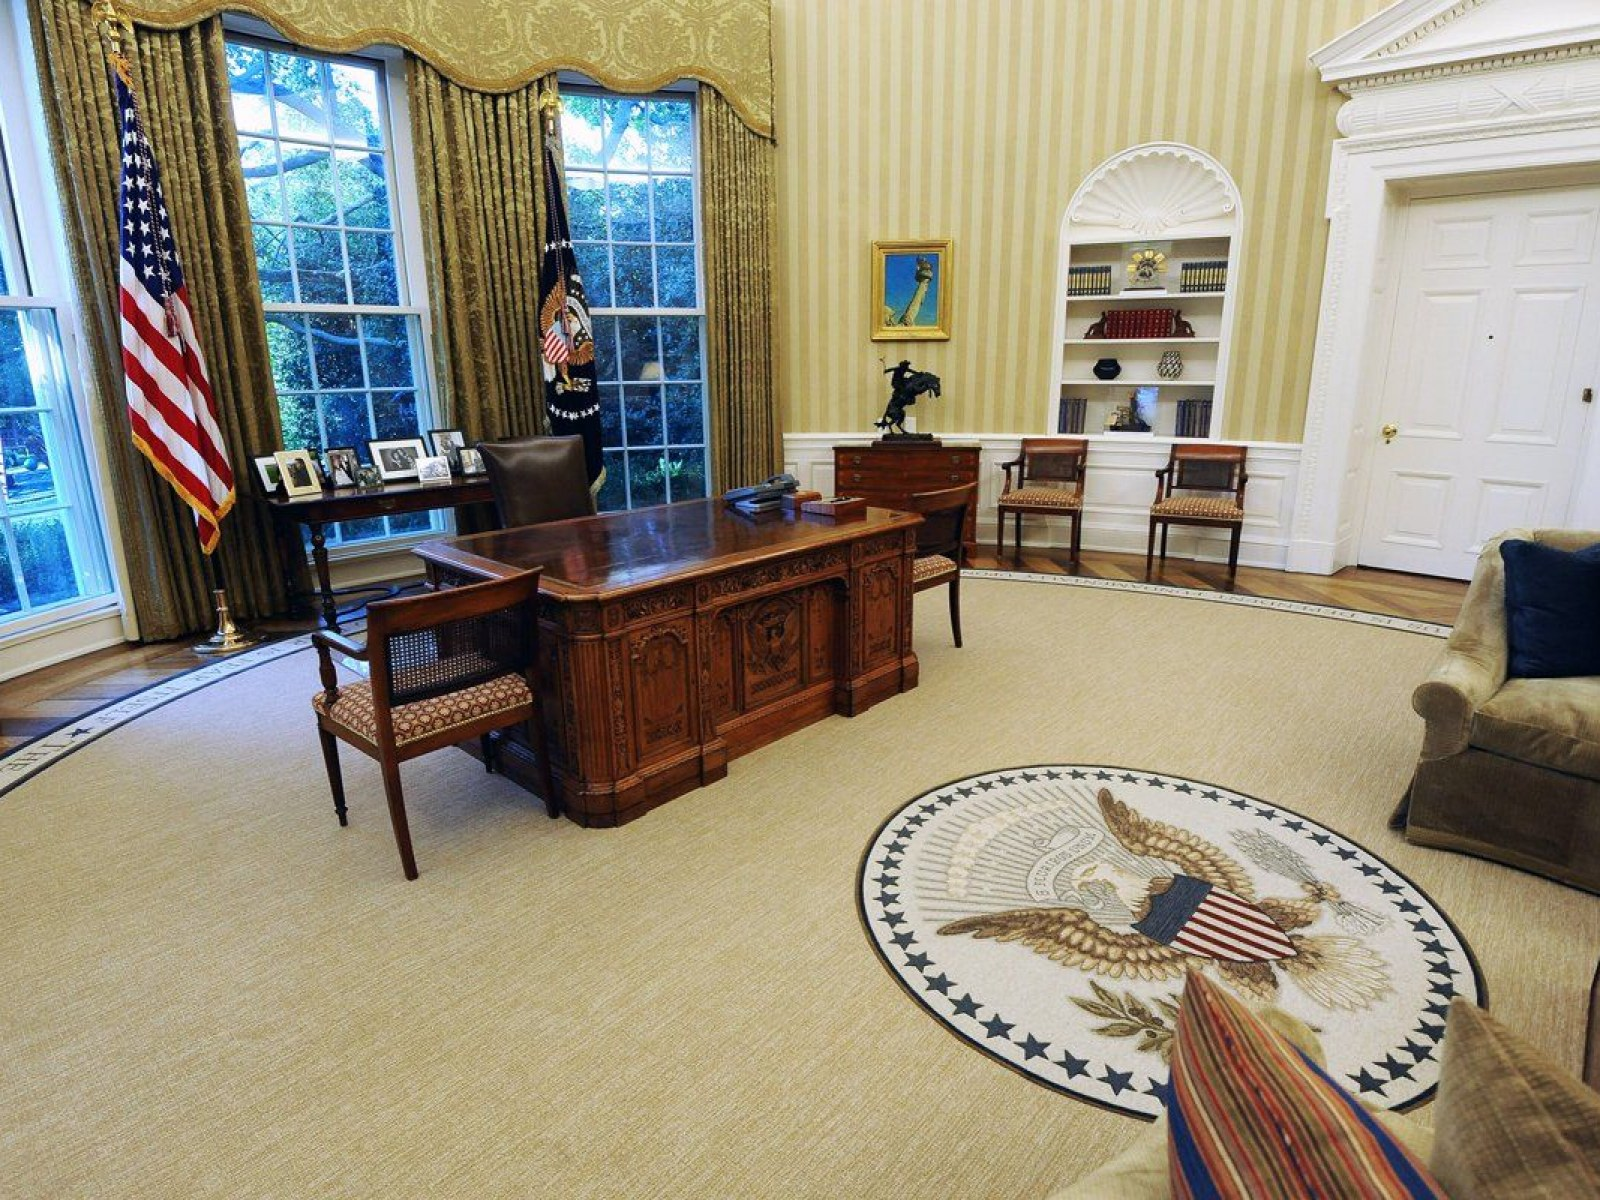 President Obama S Oval Office Remodel,United Airlines Baggage Restrictions Basic Economy